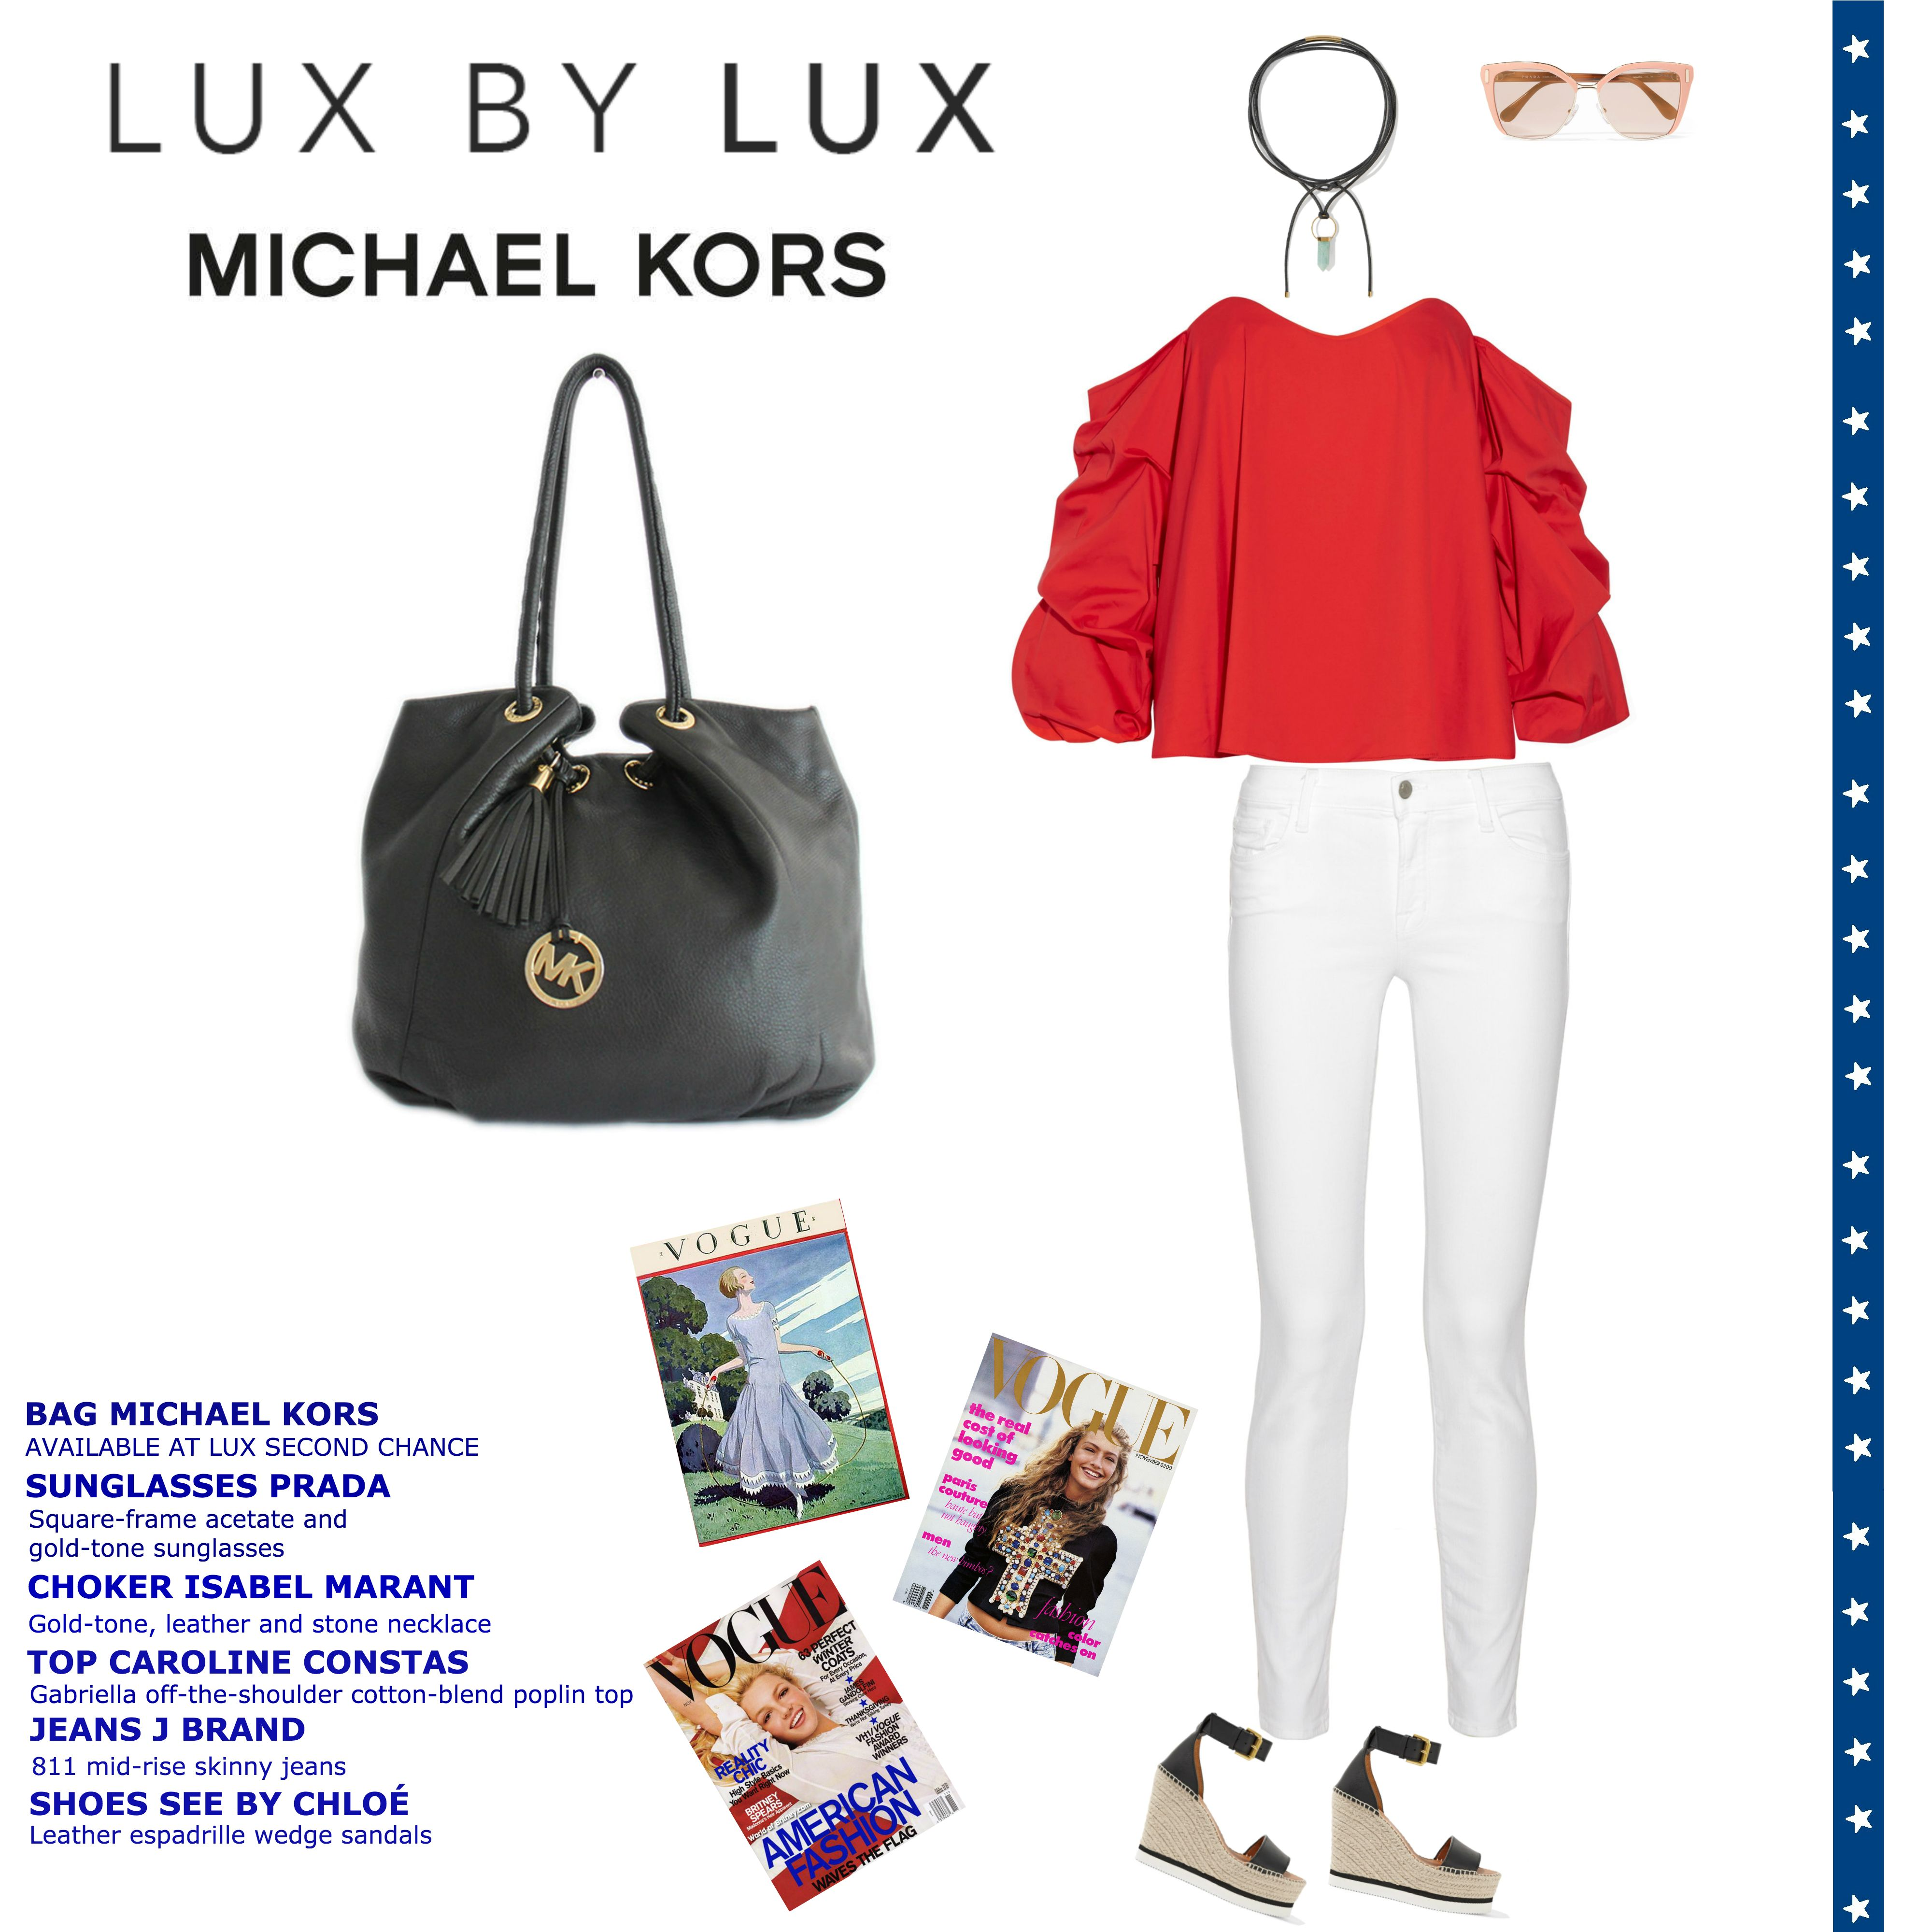 Celebrating Beauty In Everyday Living: Celebrating American Luxury With This Casual Yet Stylish